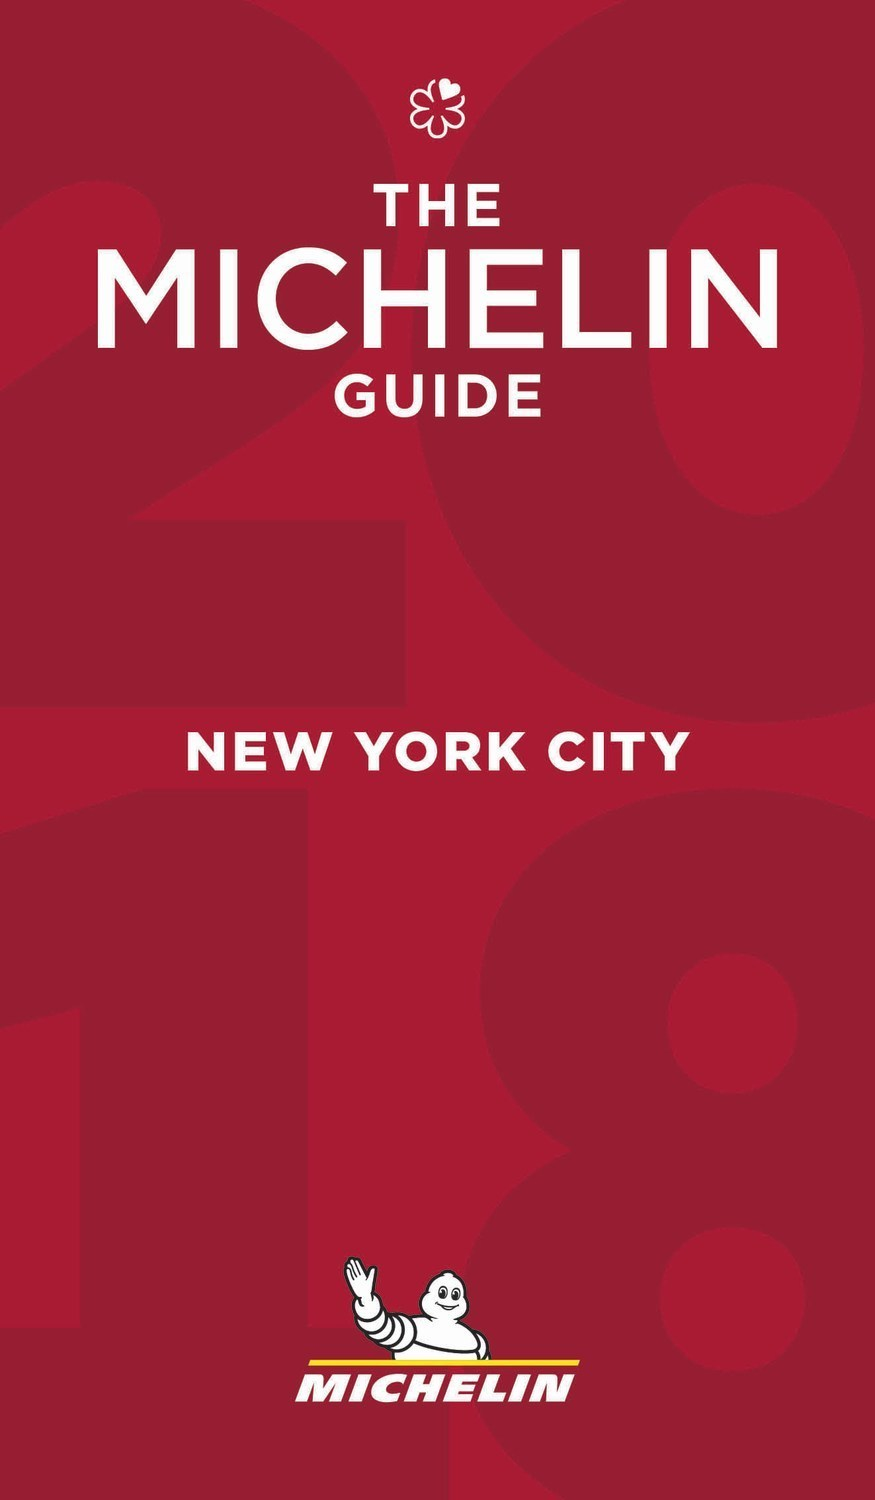 New York City Restaurants Celebrated for Great Food, Good Value in 2018 MICHELIN Guide